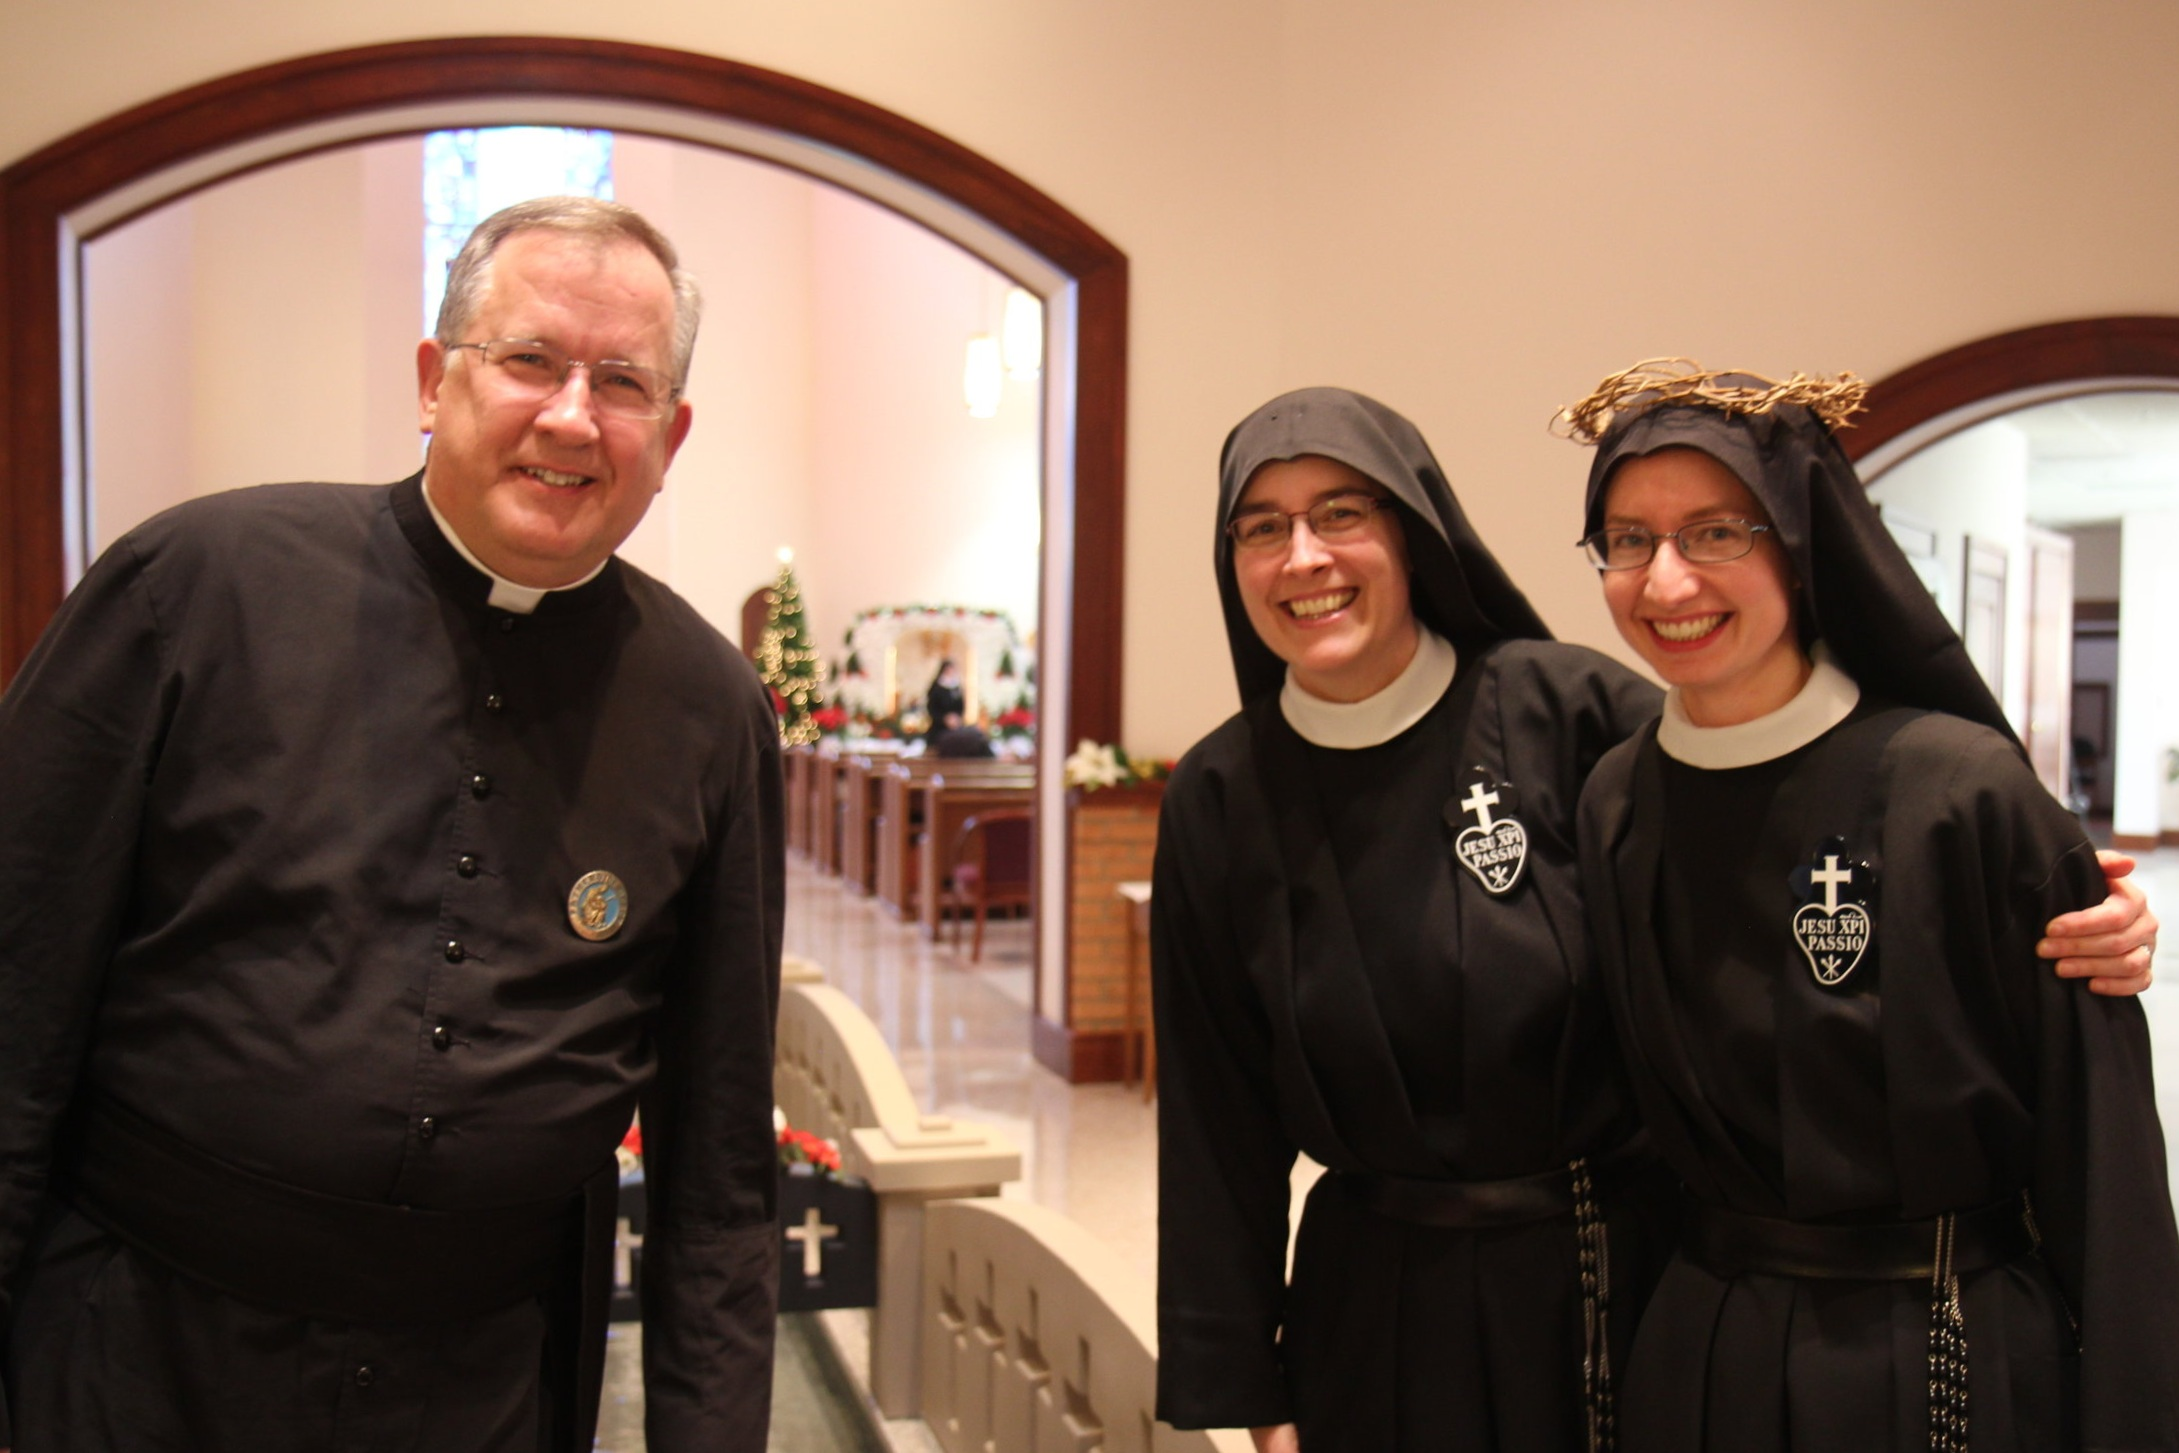 Fr. David Wilton, CPM, Mother John Mary, and Sr. Cecilia Maria after the Mass